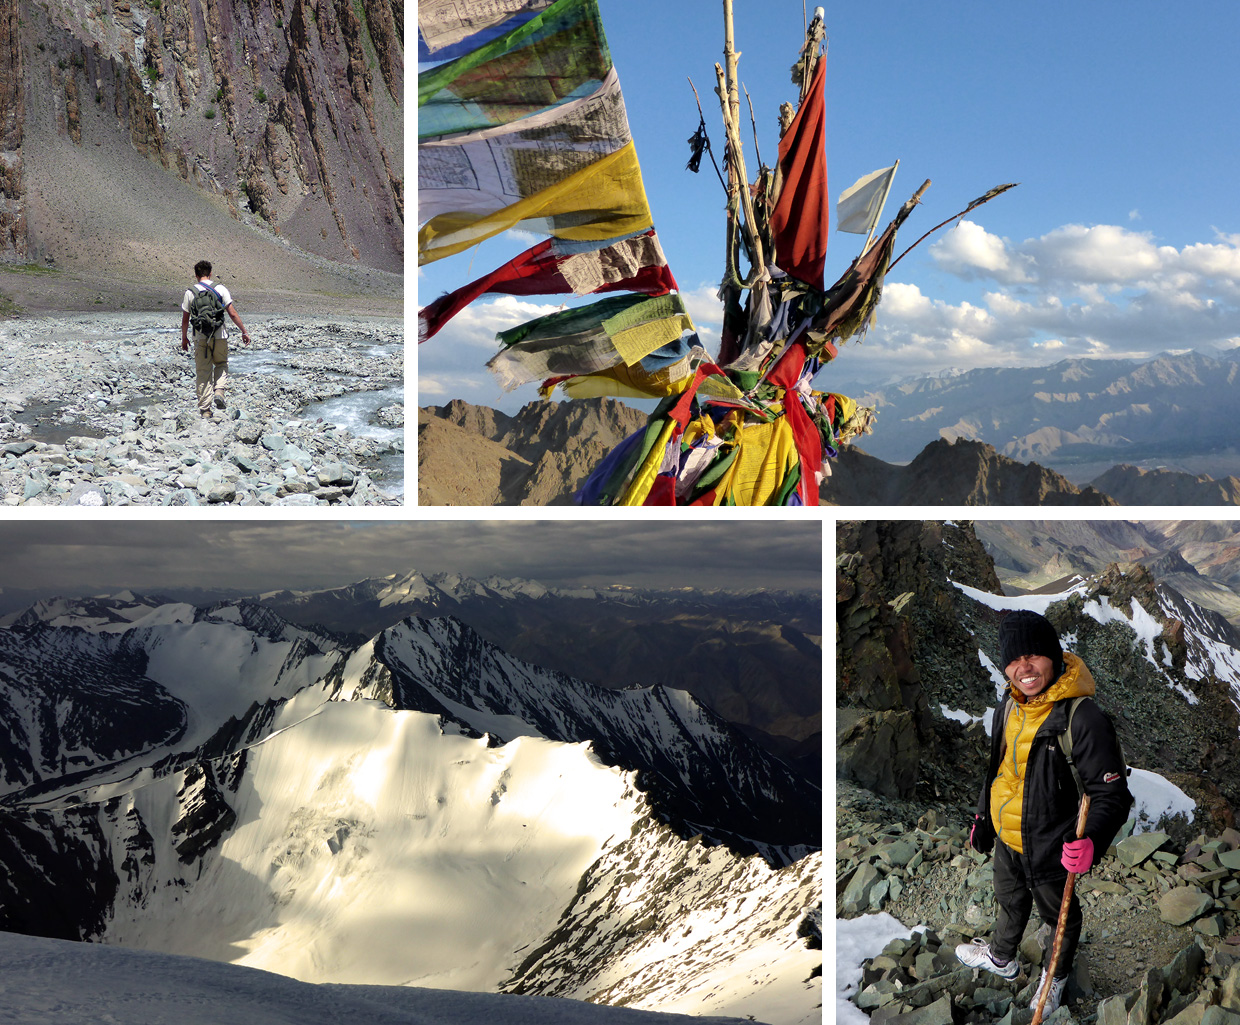 Mountaineering - The Indian Himalaya